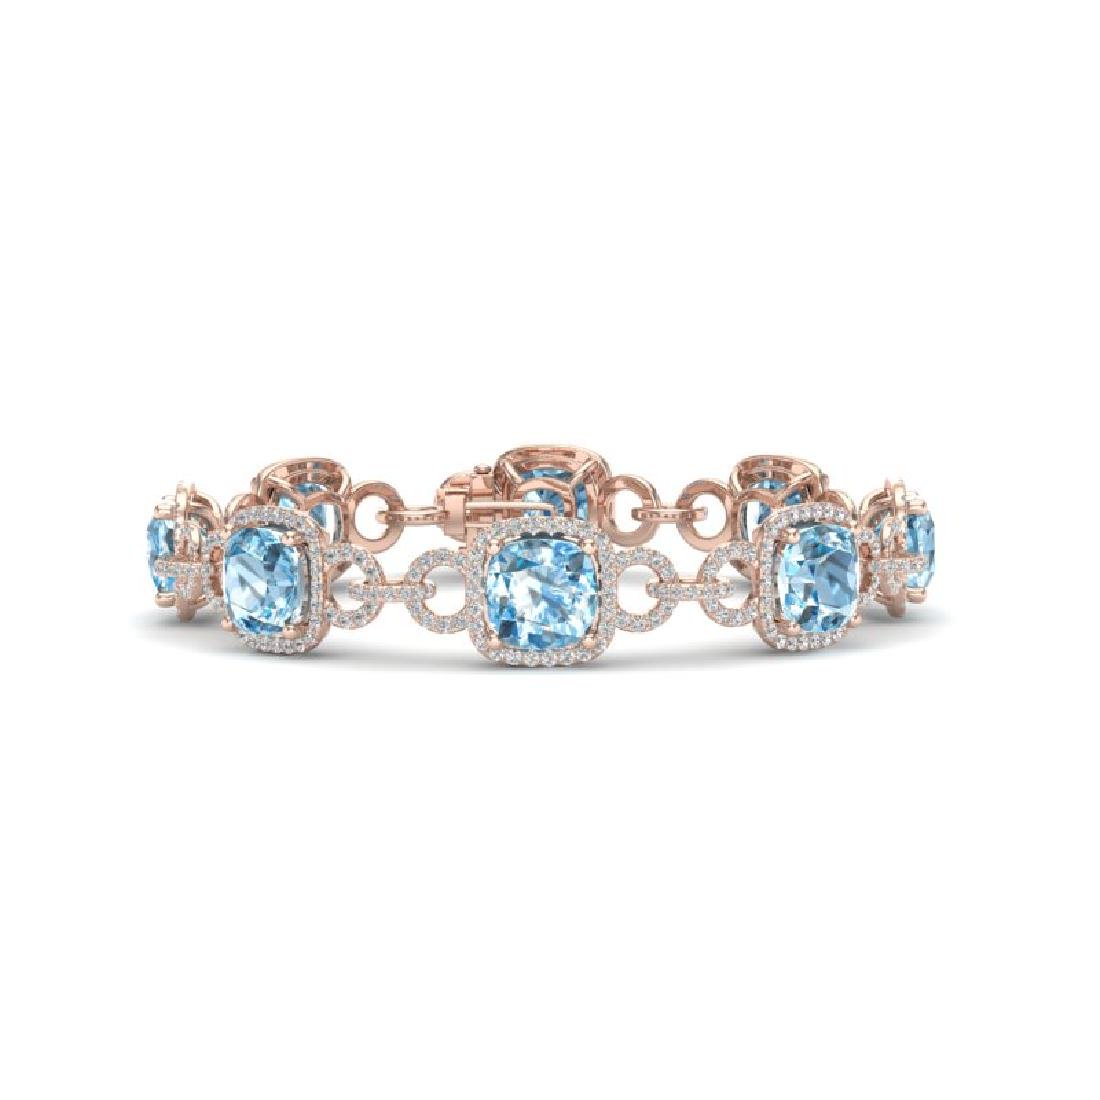 30 CTW Topaz & VS/SI Diamond Bracelet 14K Rose Gold